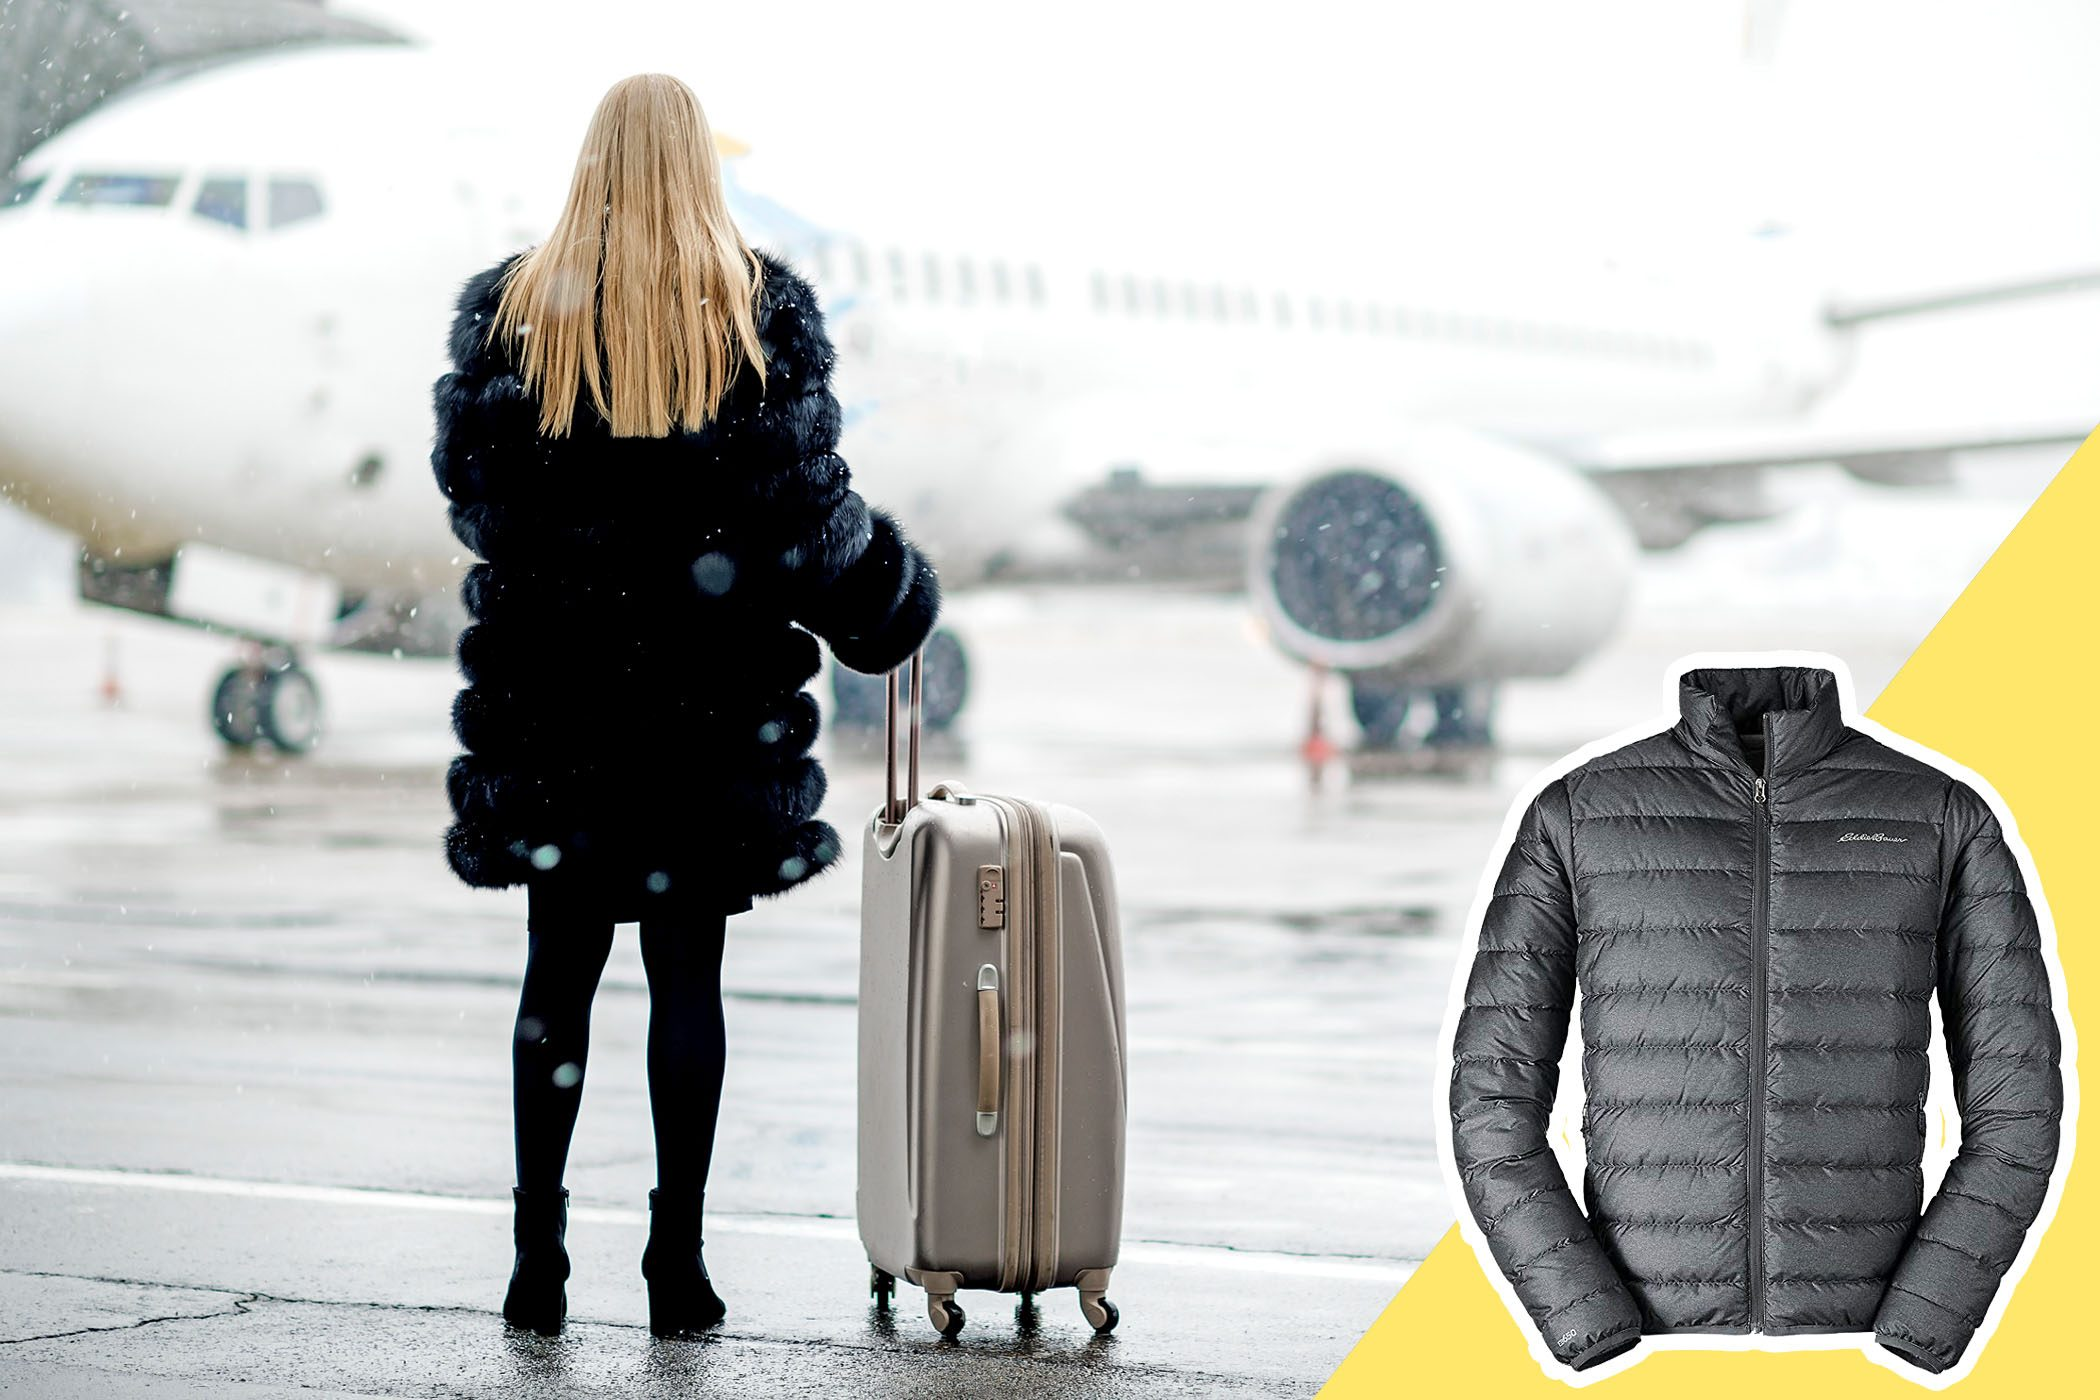 woman wearing bulky coat near airplane with inset of light coat